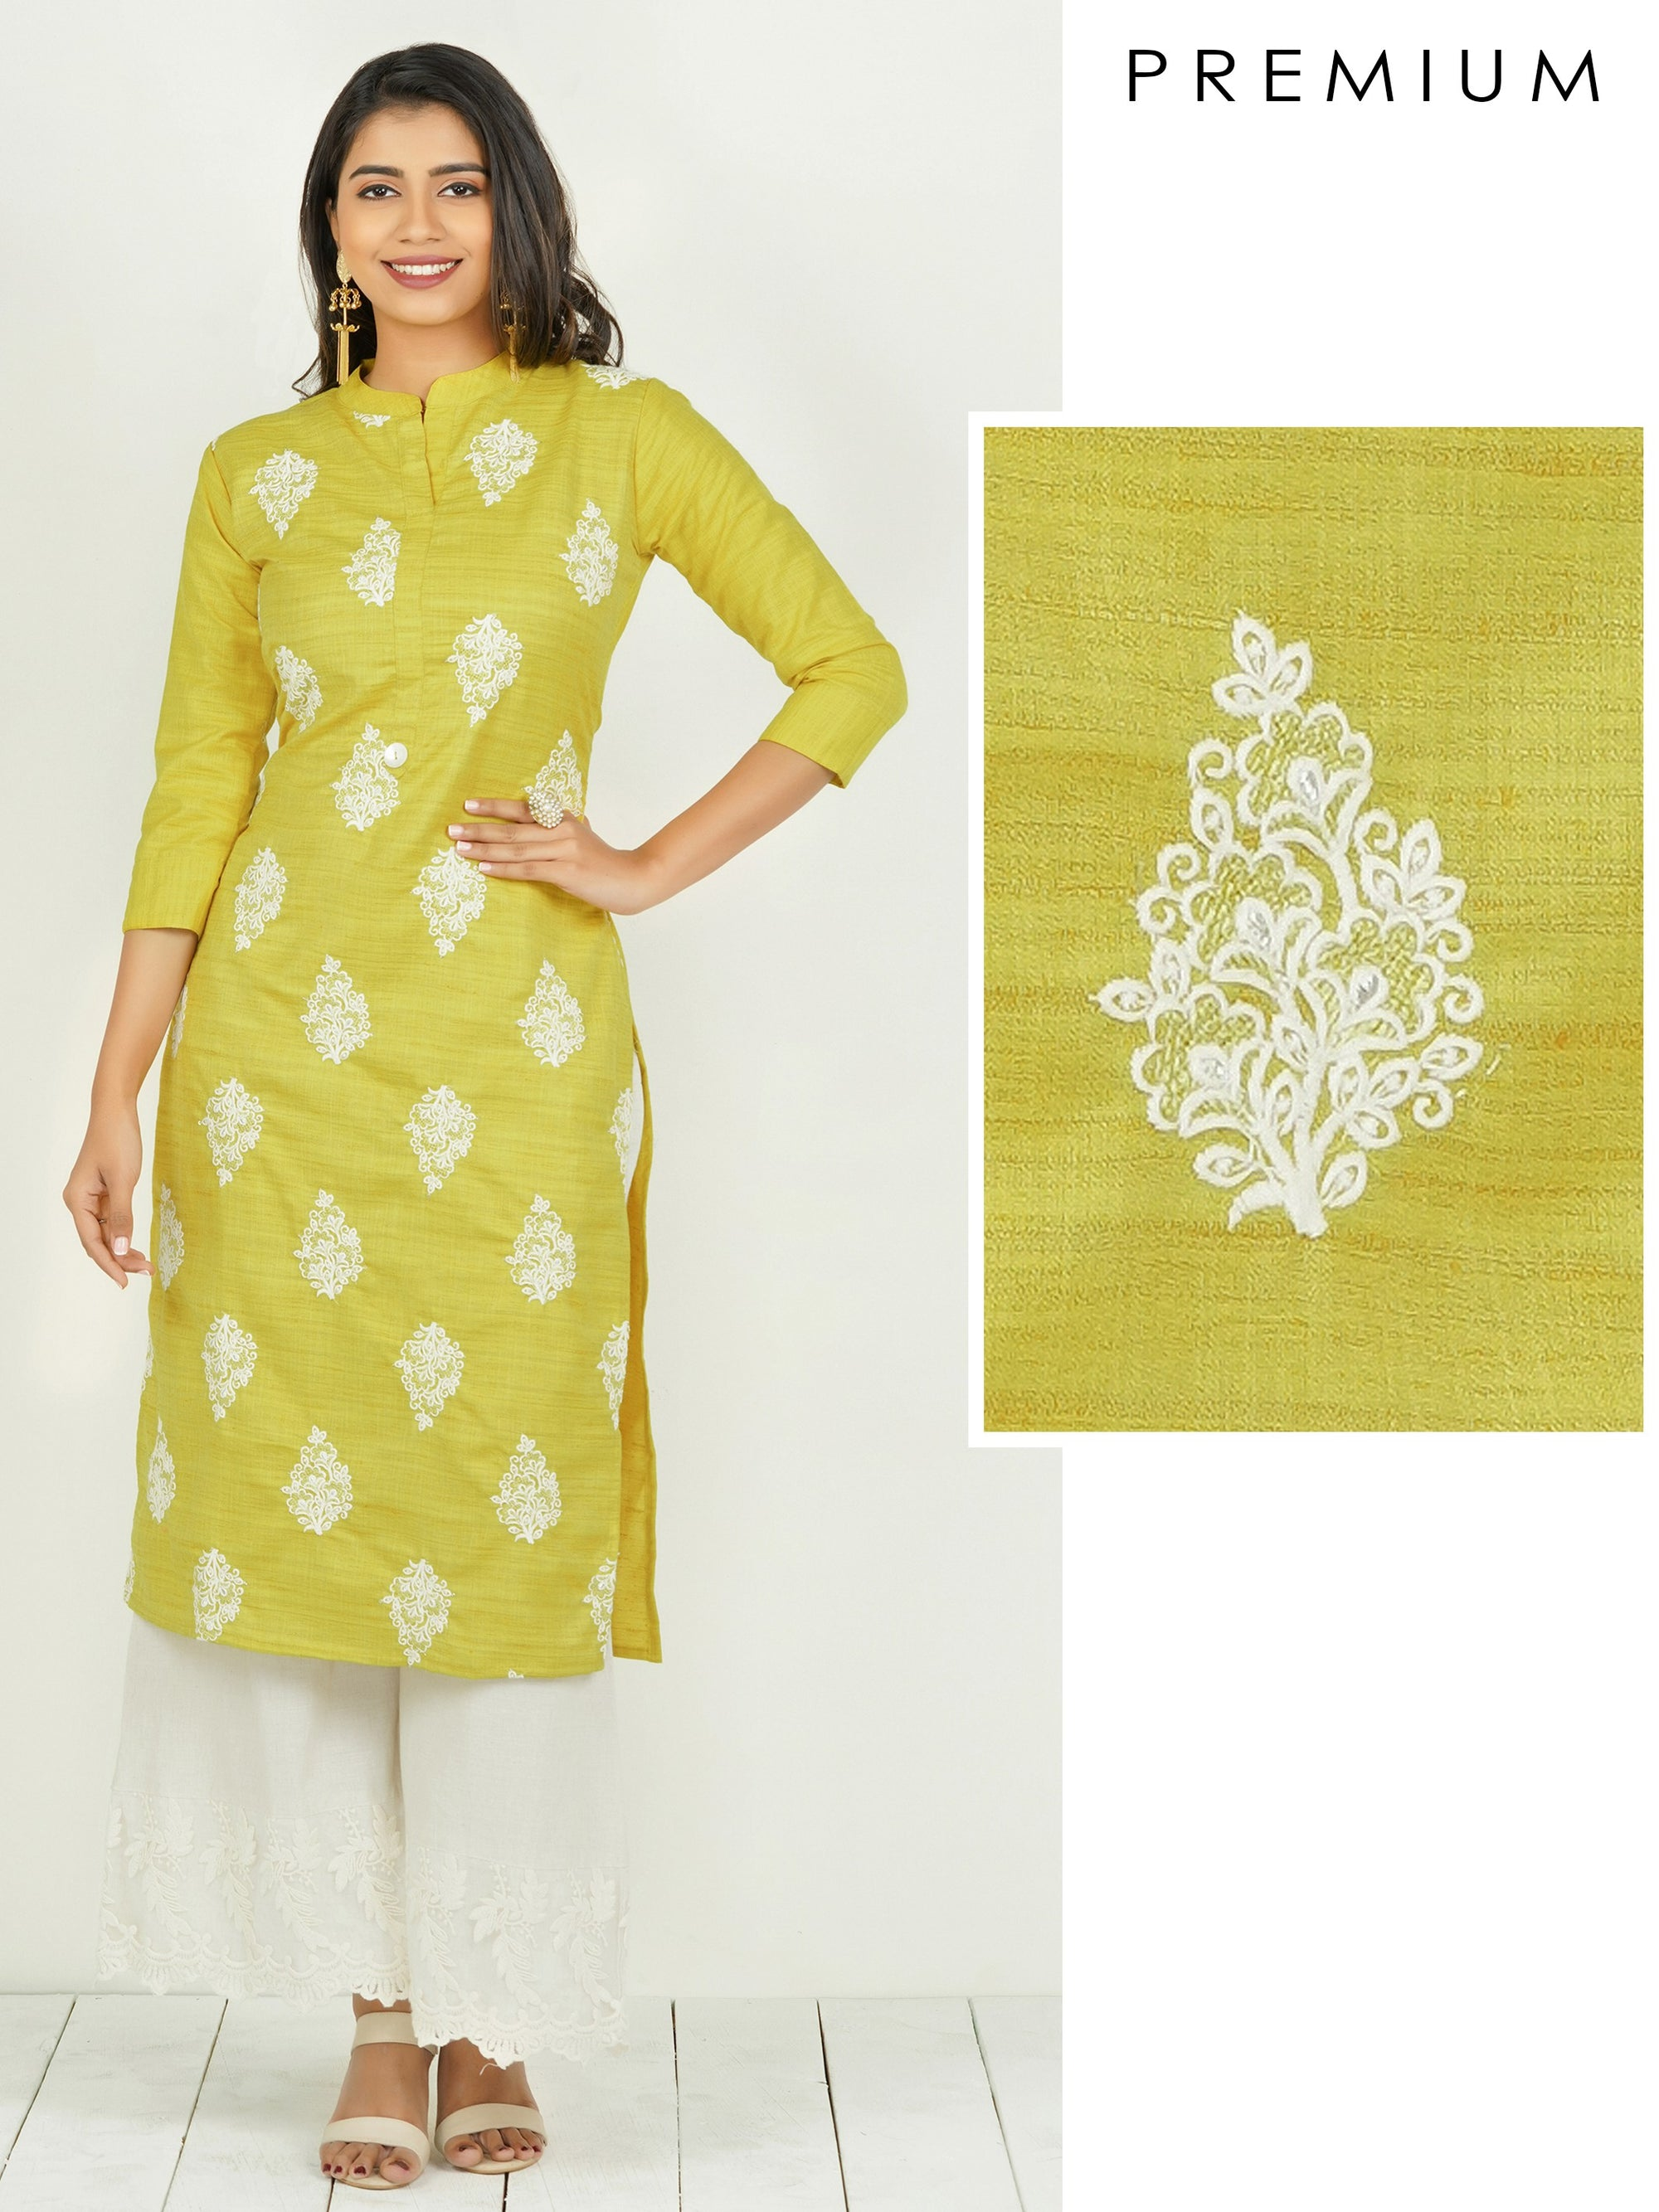 Floral & Cross Stitch Embroidered Kurti - Chartreuse Yellow